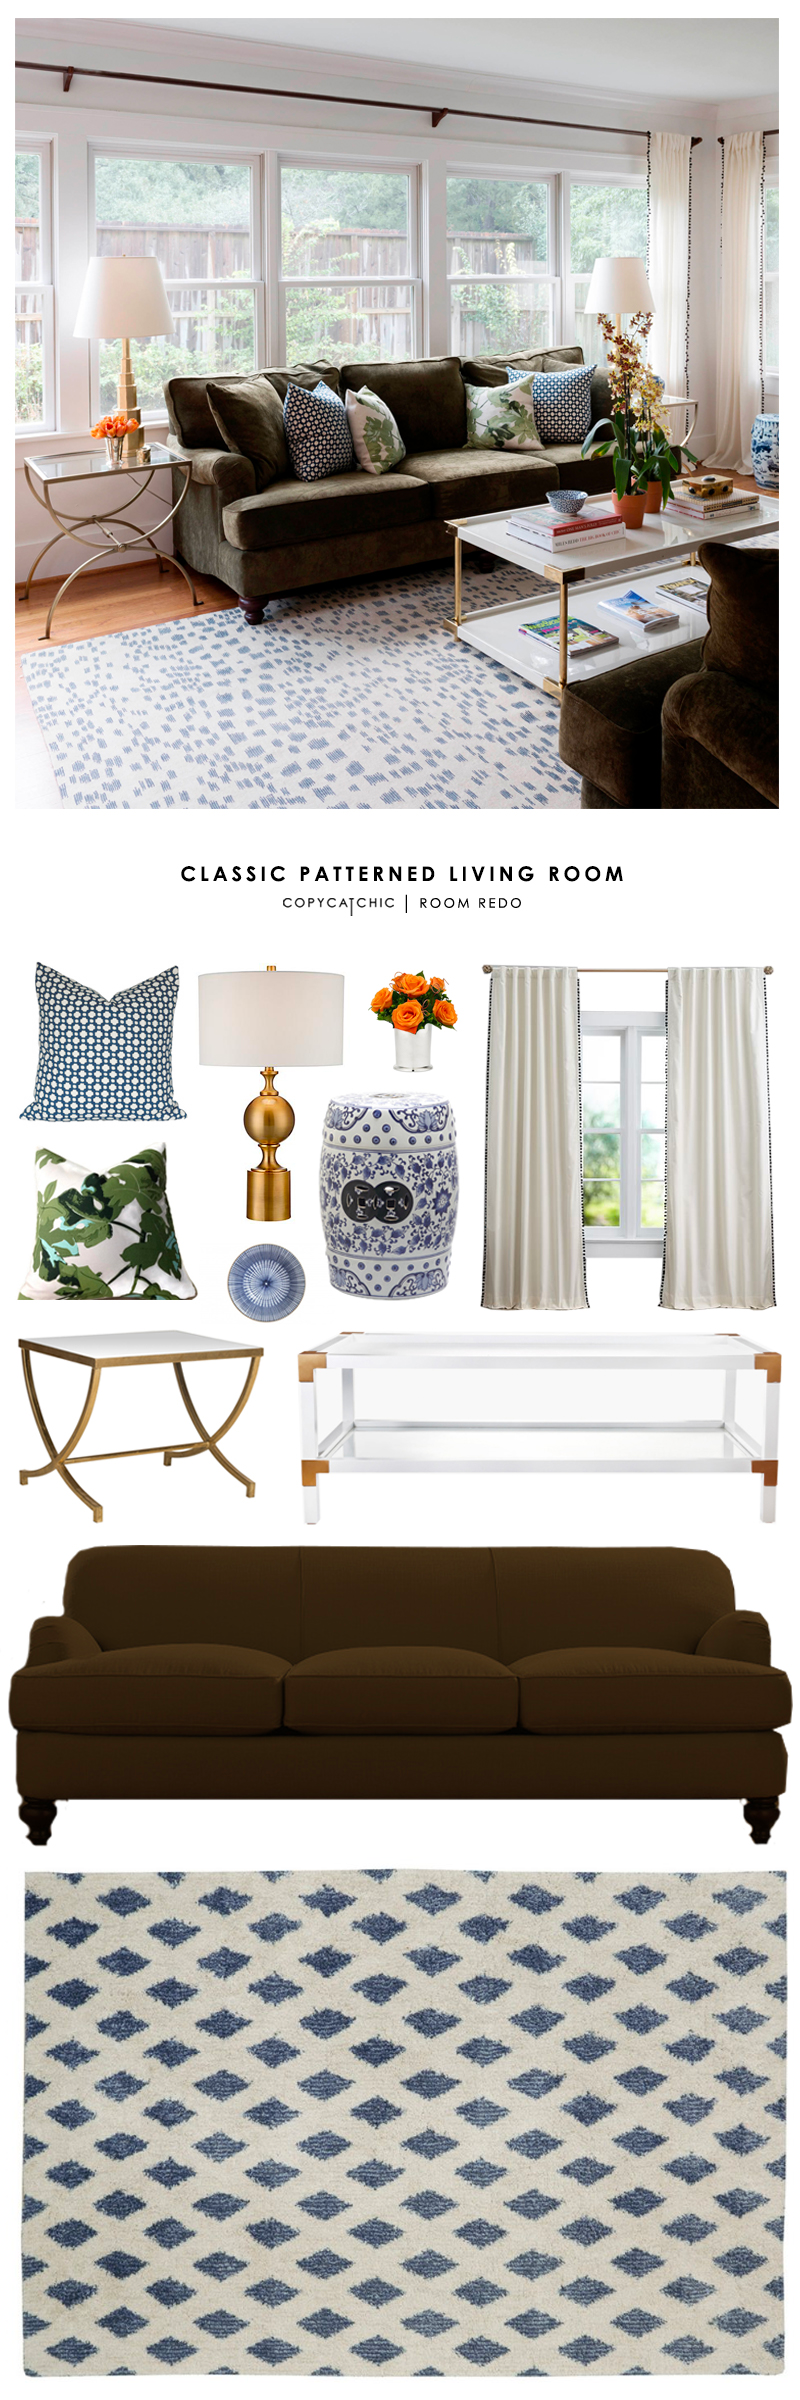 This classic and patterned living room designed by Paloma Contreras gets recreated for less by Copy Cat Chic luxe living for less budget home decor & design